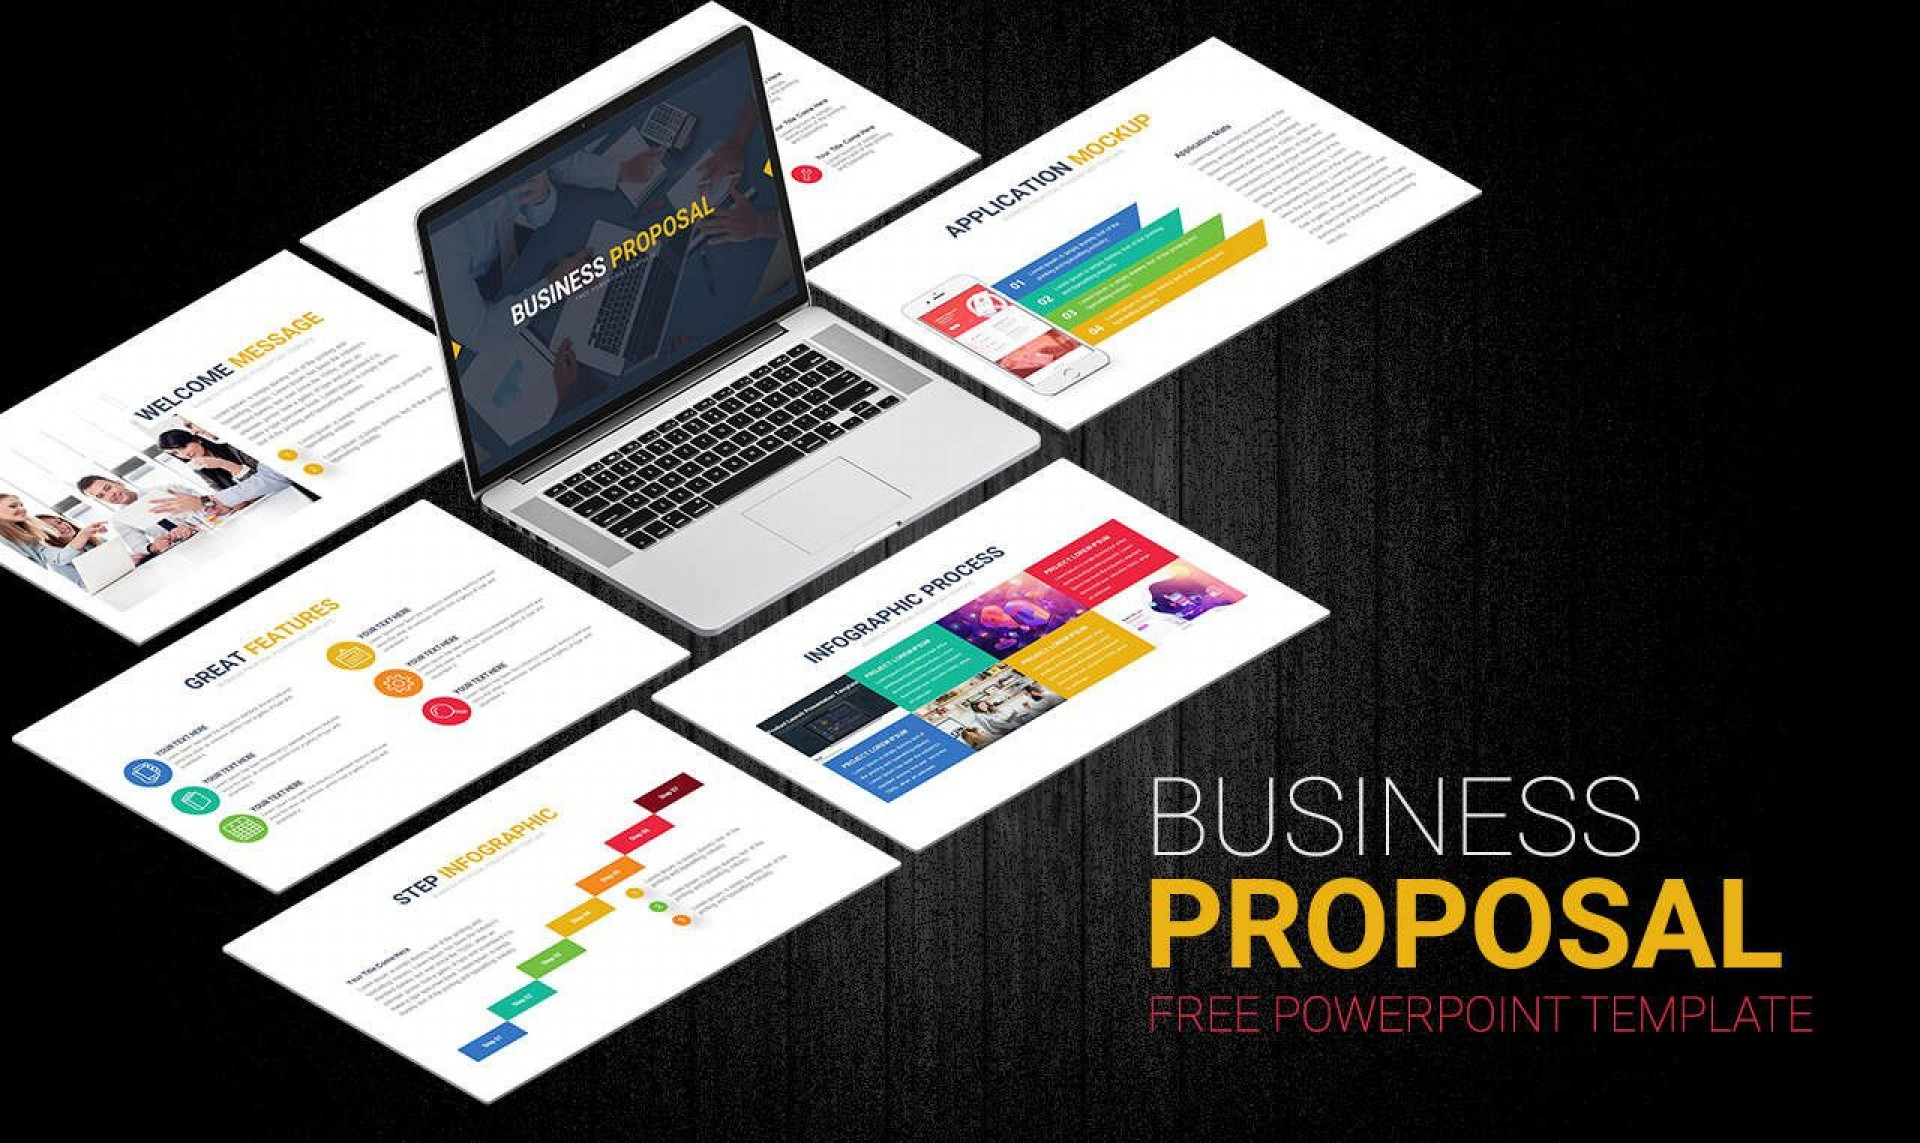 007 Amazing Free Busines Proposal Template Powerpoint Sample  Best Plan Ppt 2020 Sale1920